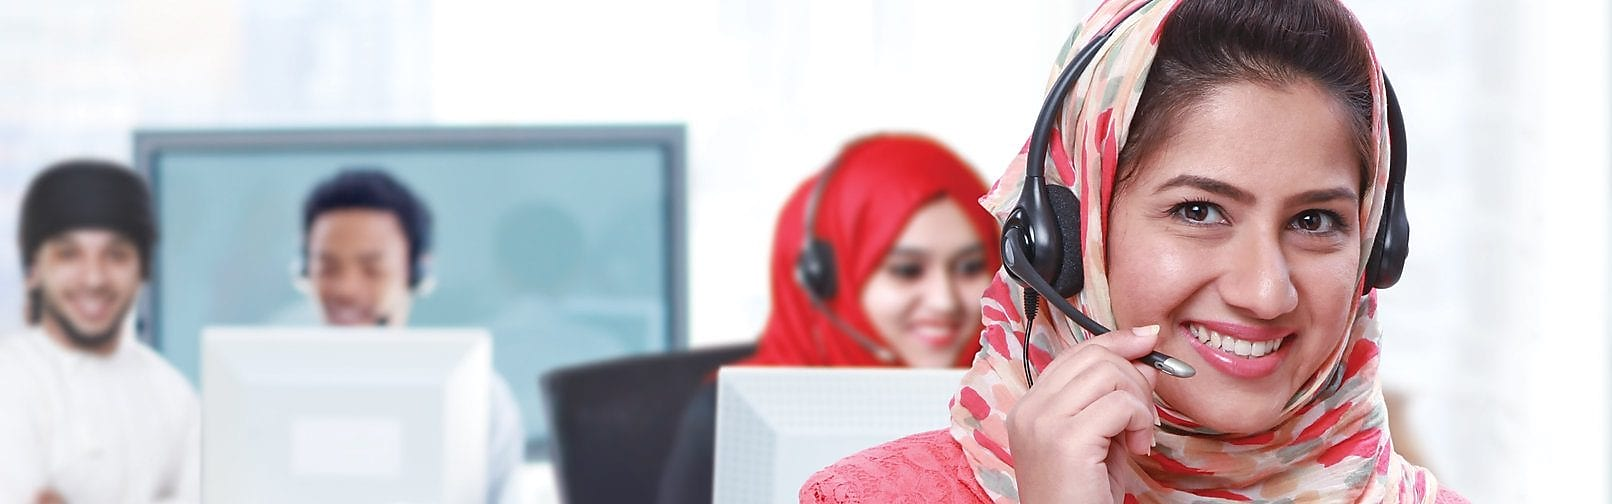 Women wearing headphones and mic answering calls in a call centre,Singapore 2008